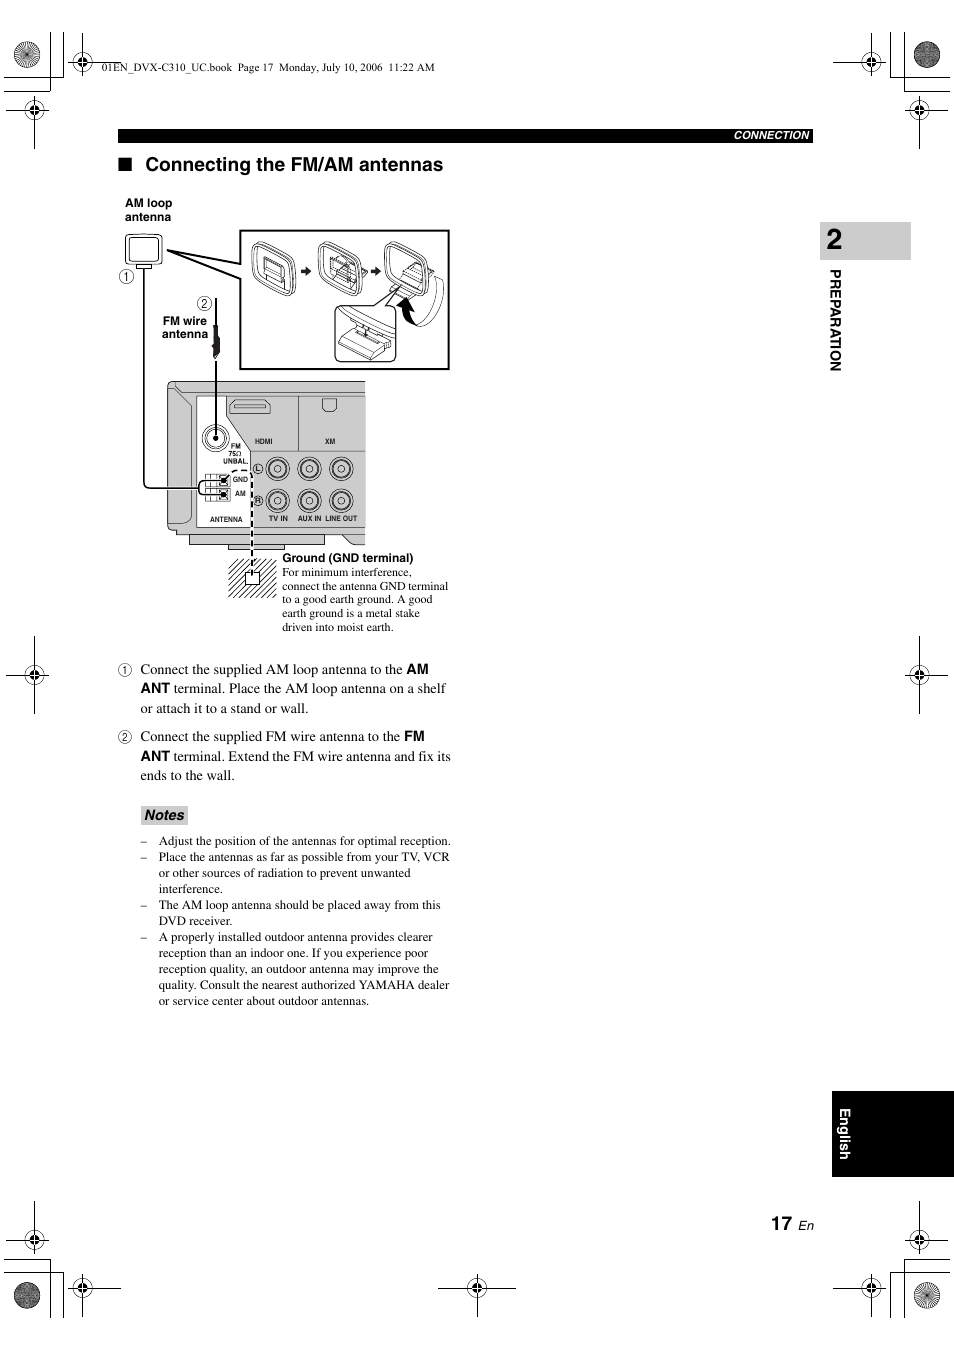 Download free pdf for yamaha dvx-c310 home theater manual.